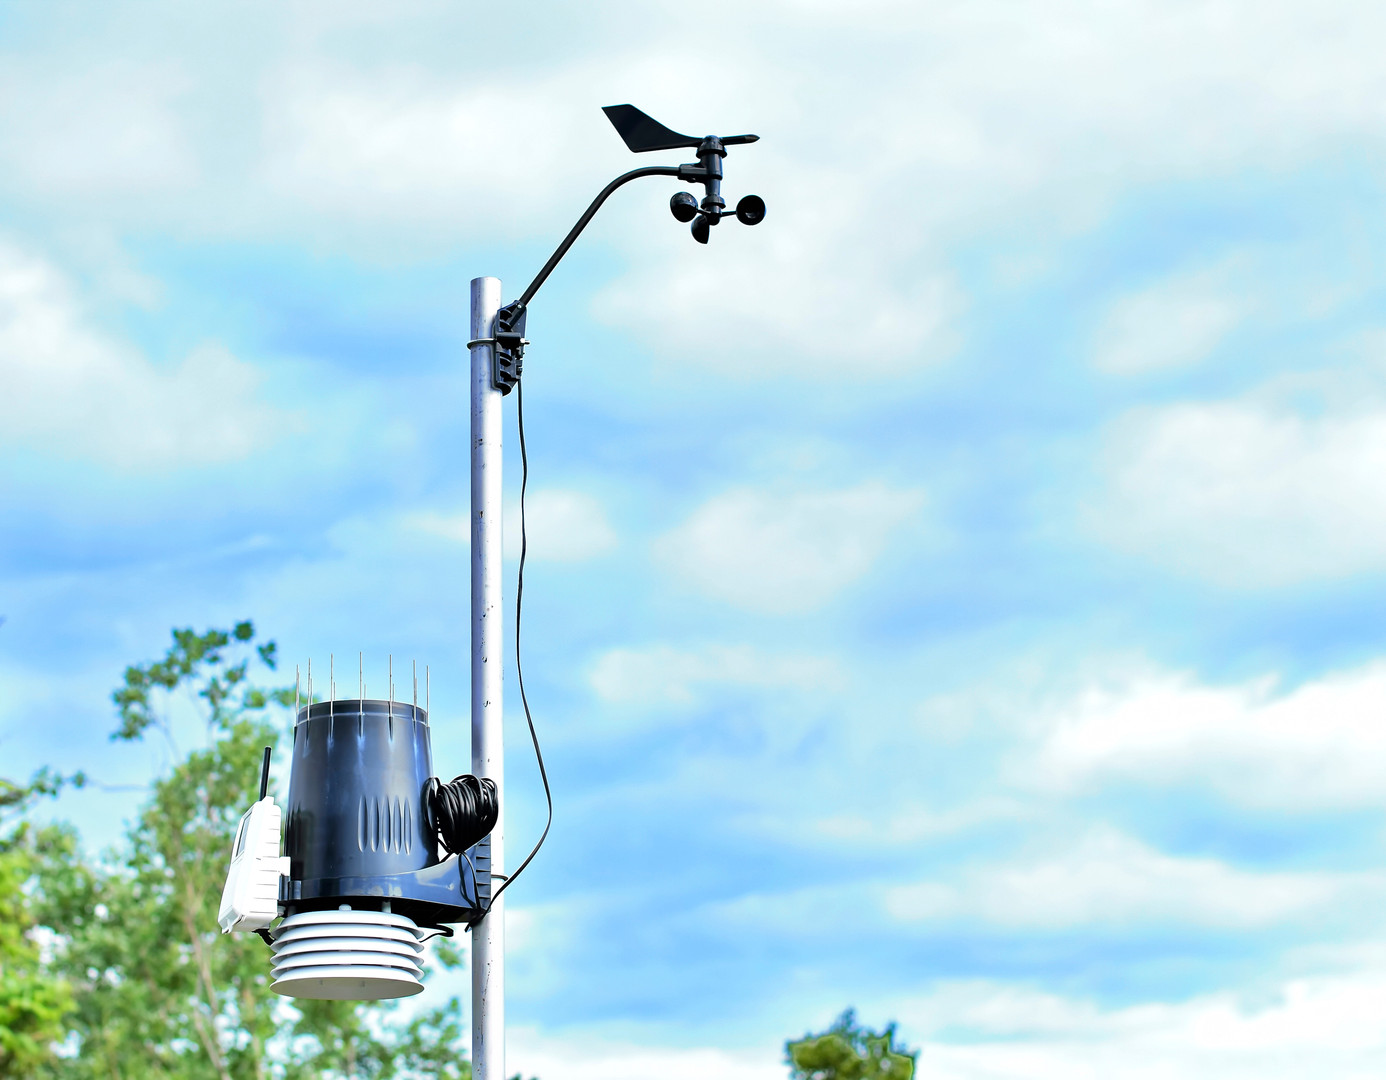 Personal Meteorological weather station.